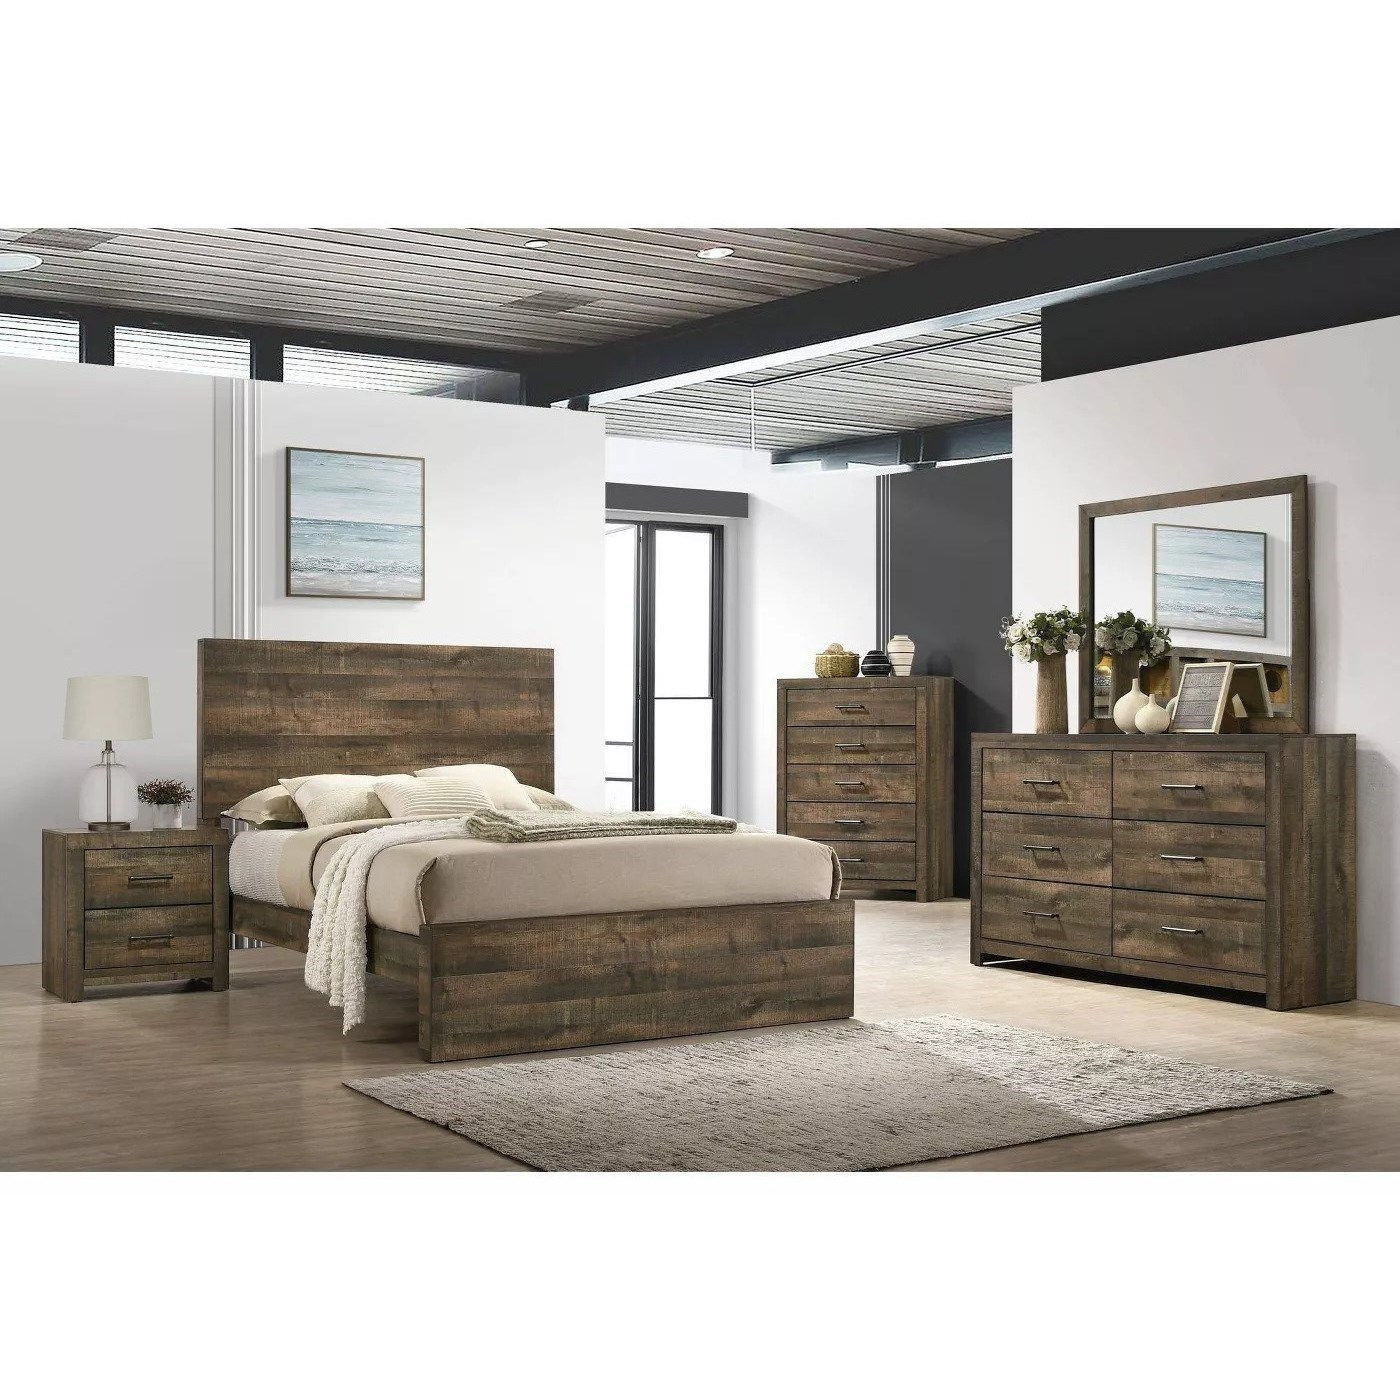 Bailey King Bedroom Group by Elements International at Lindy's Furniture Company